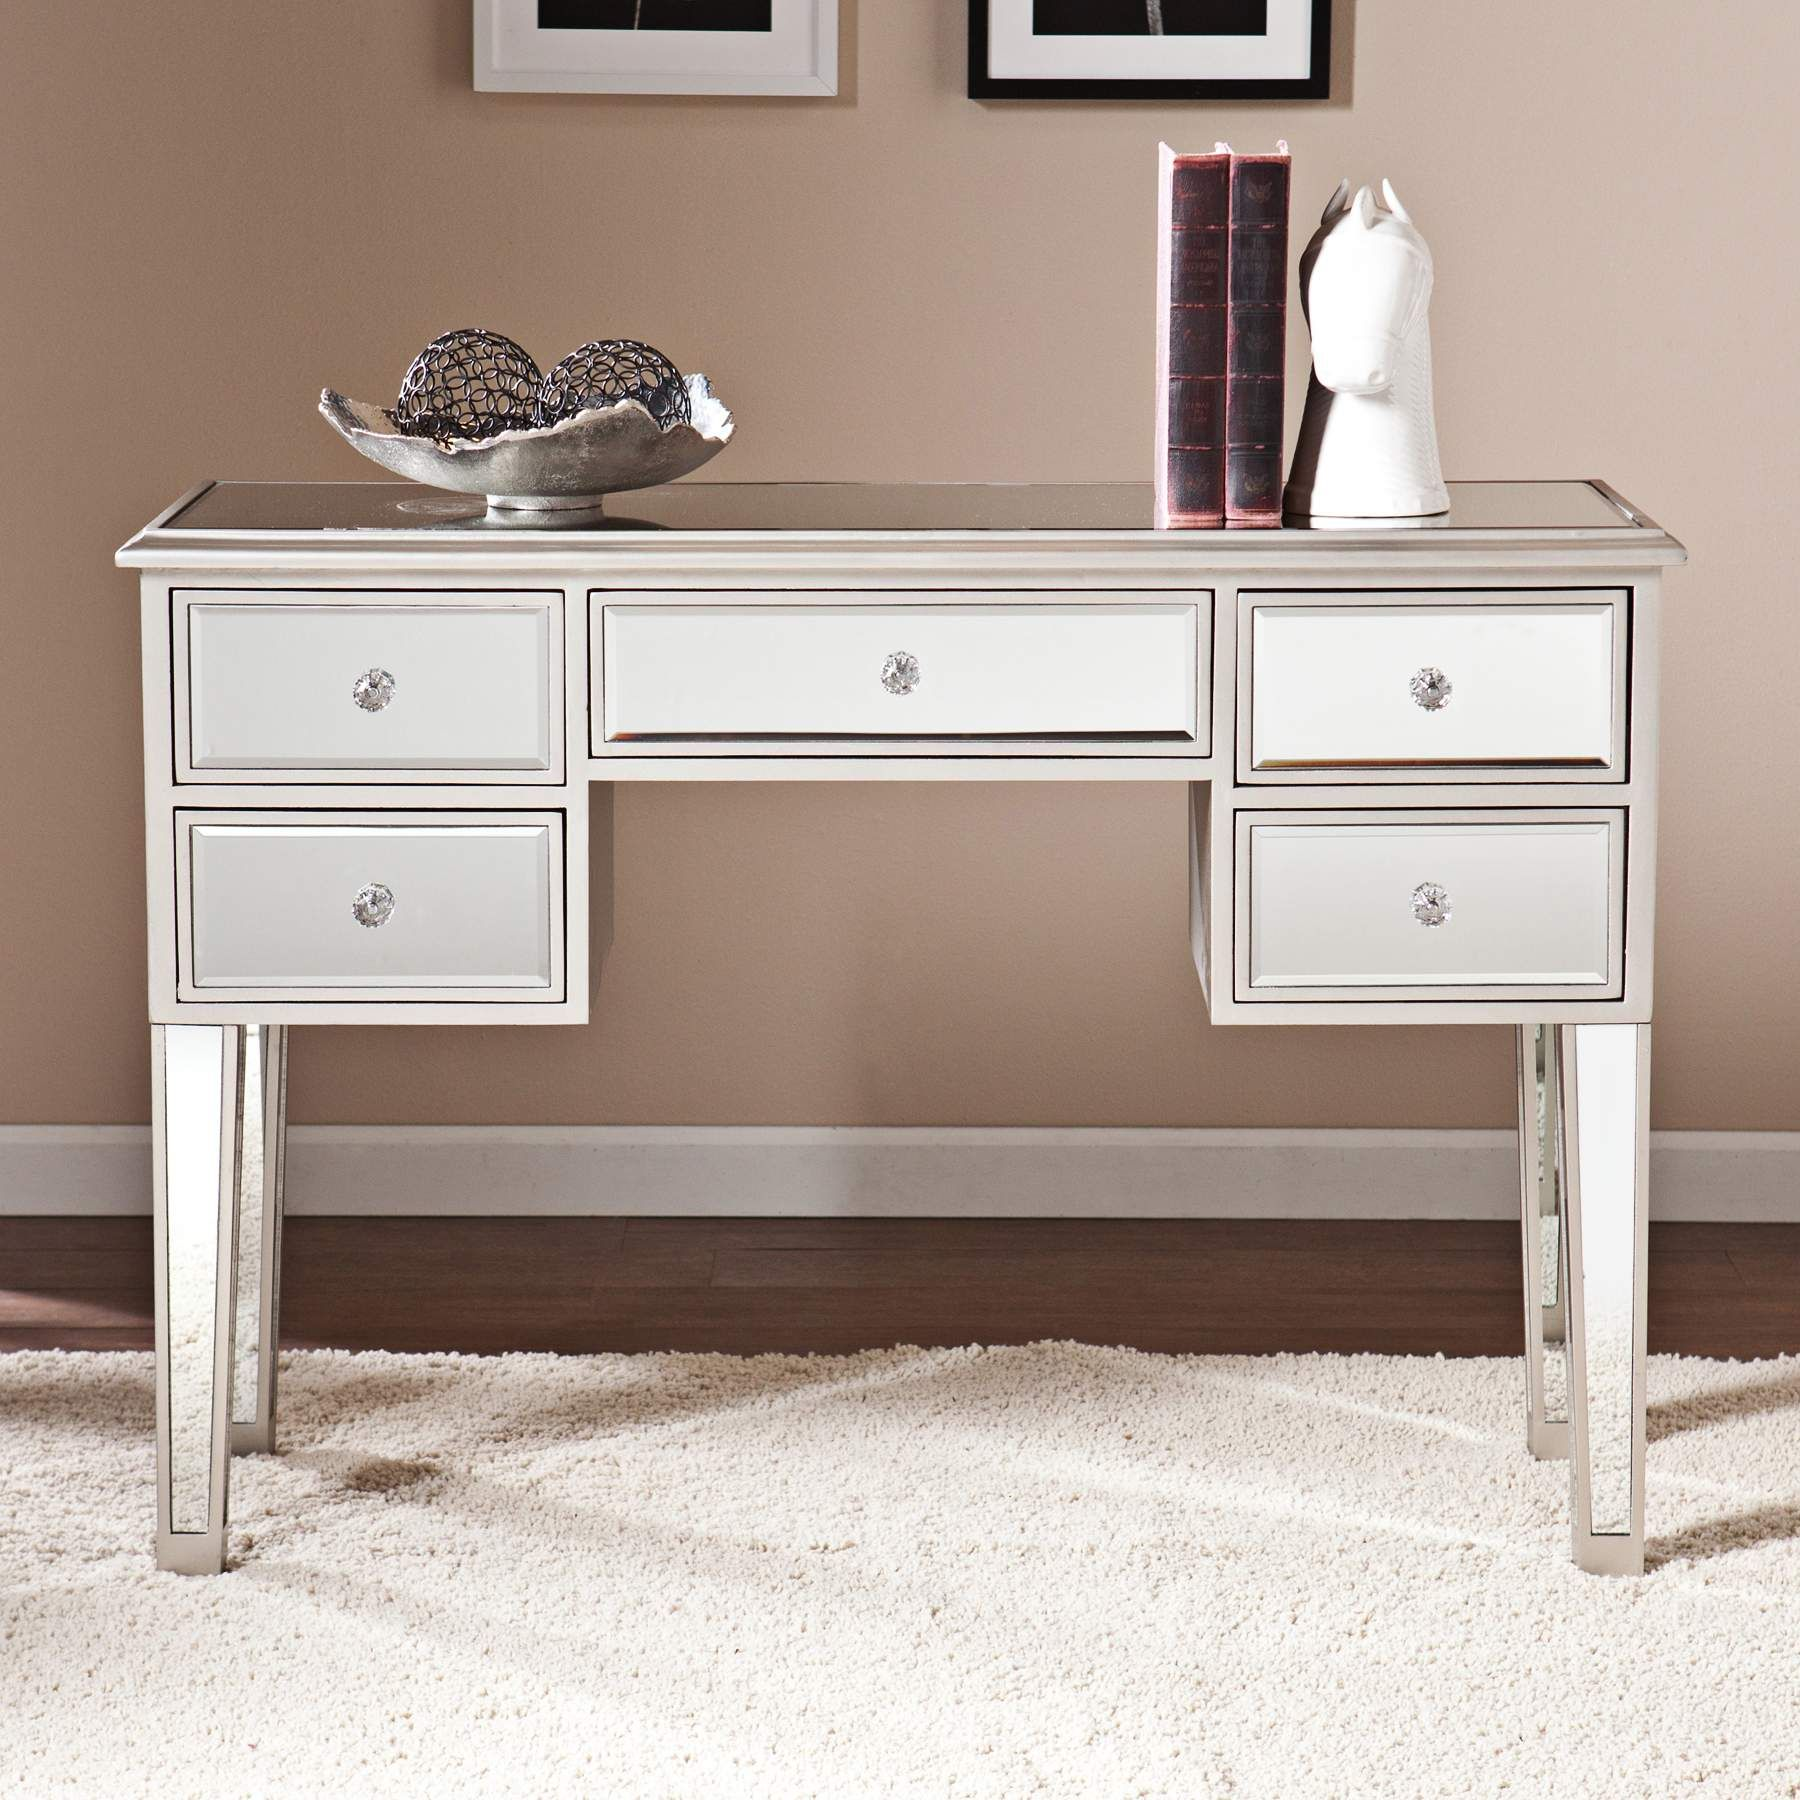 Mirage 43 Inch Wide Mirrored 5 Drawer Console Table Desk With